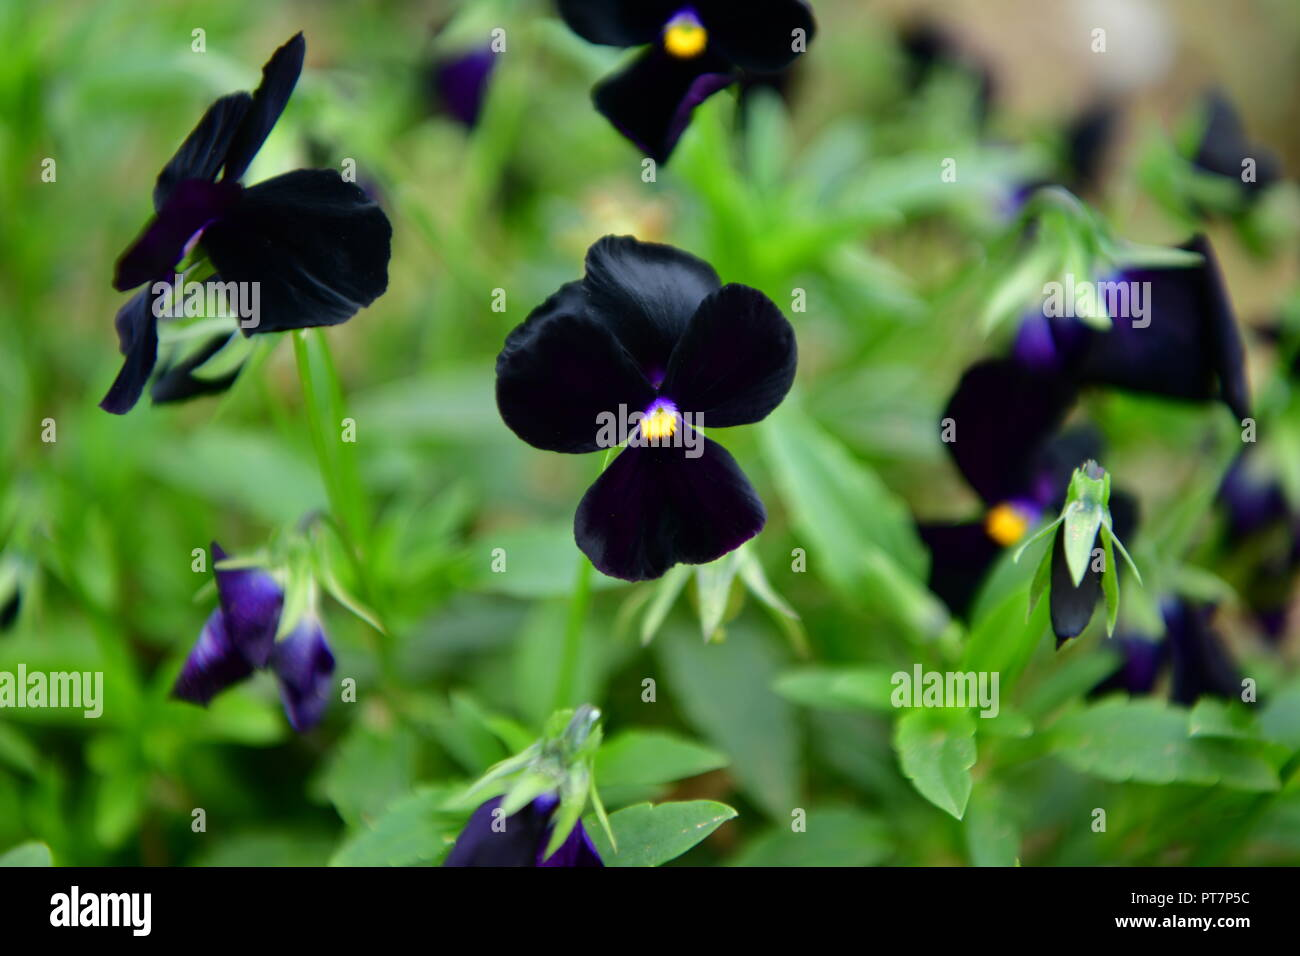 Garden with flowers of different colors stock photos garden with beautiful garden with well kept flowers vegetables herbs the effect of hard work on the izmirmasajfo